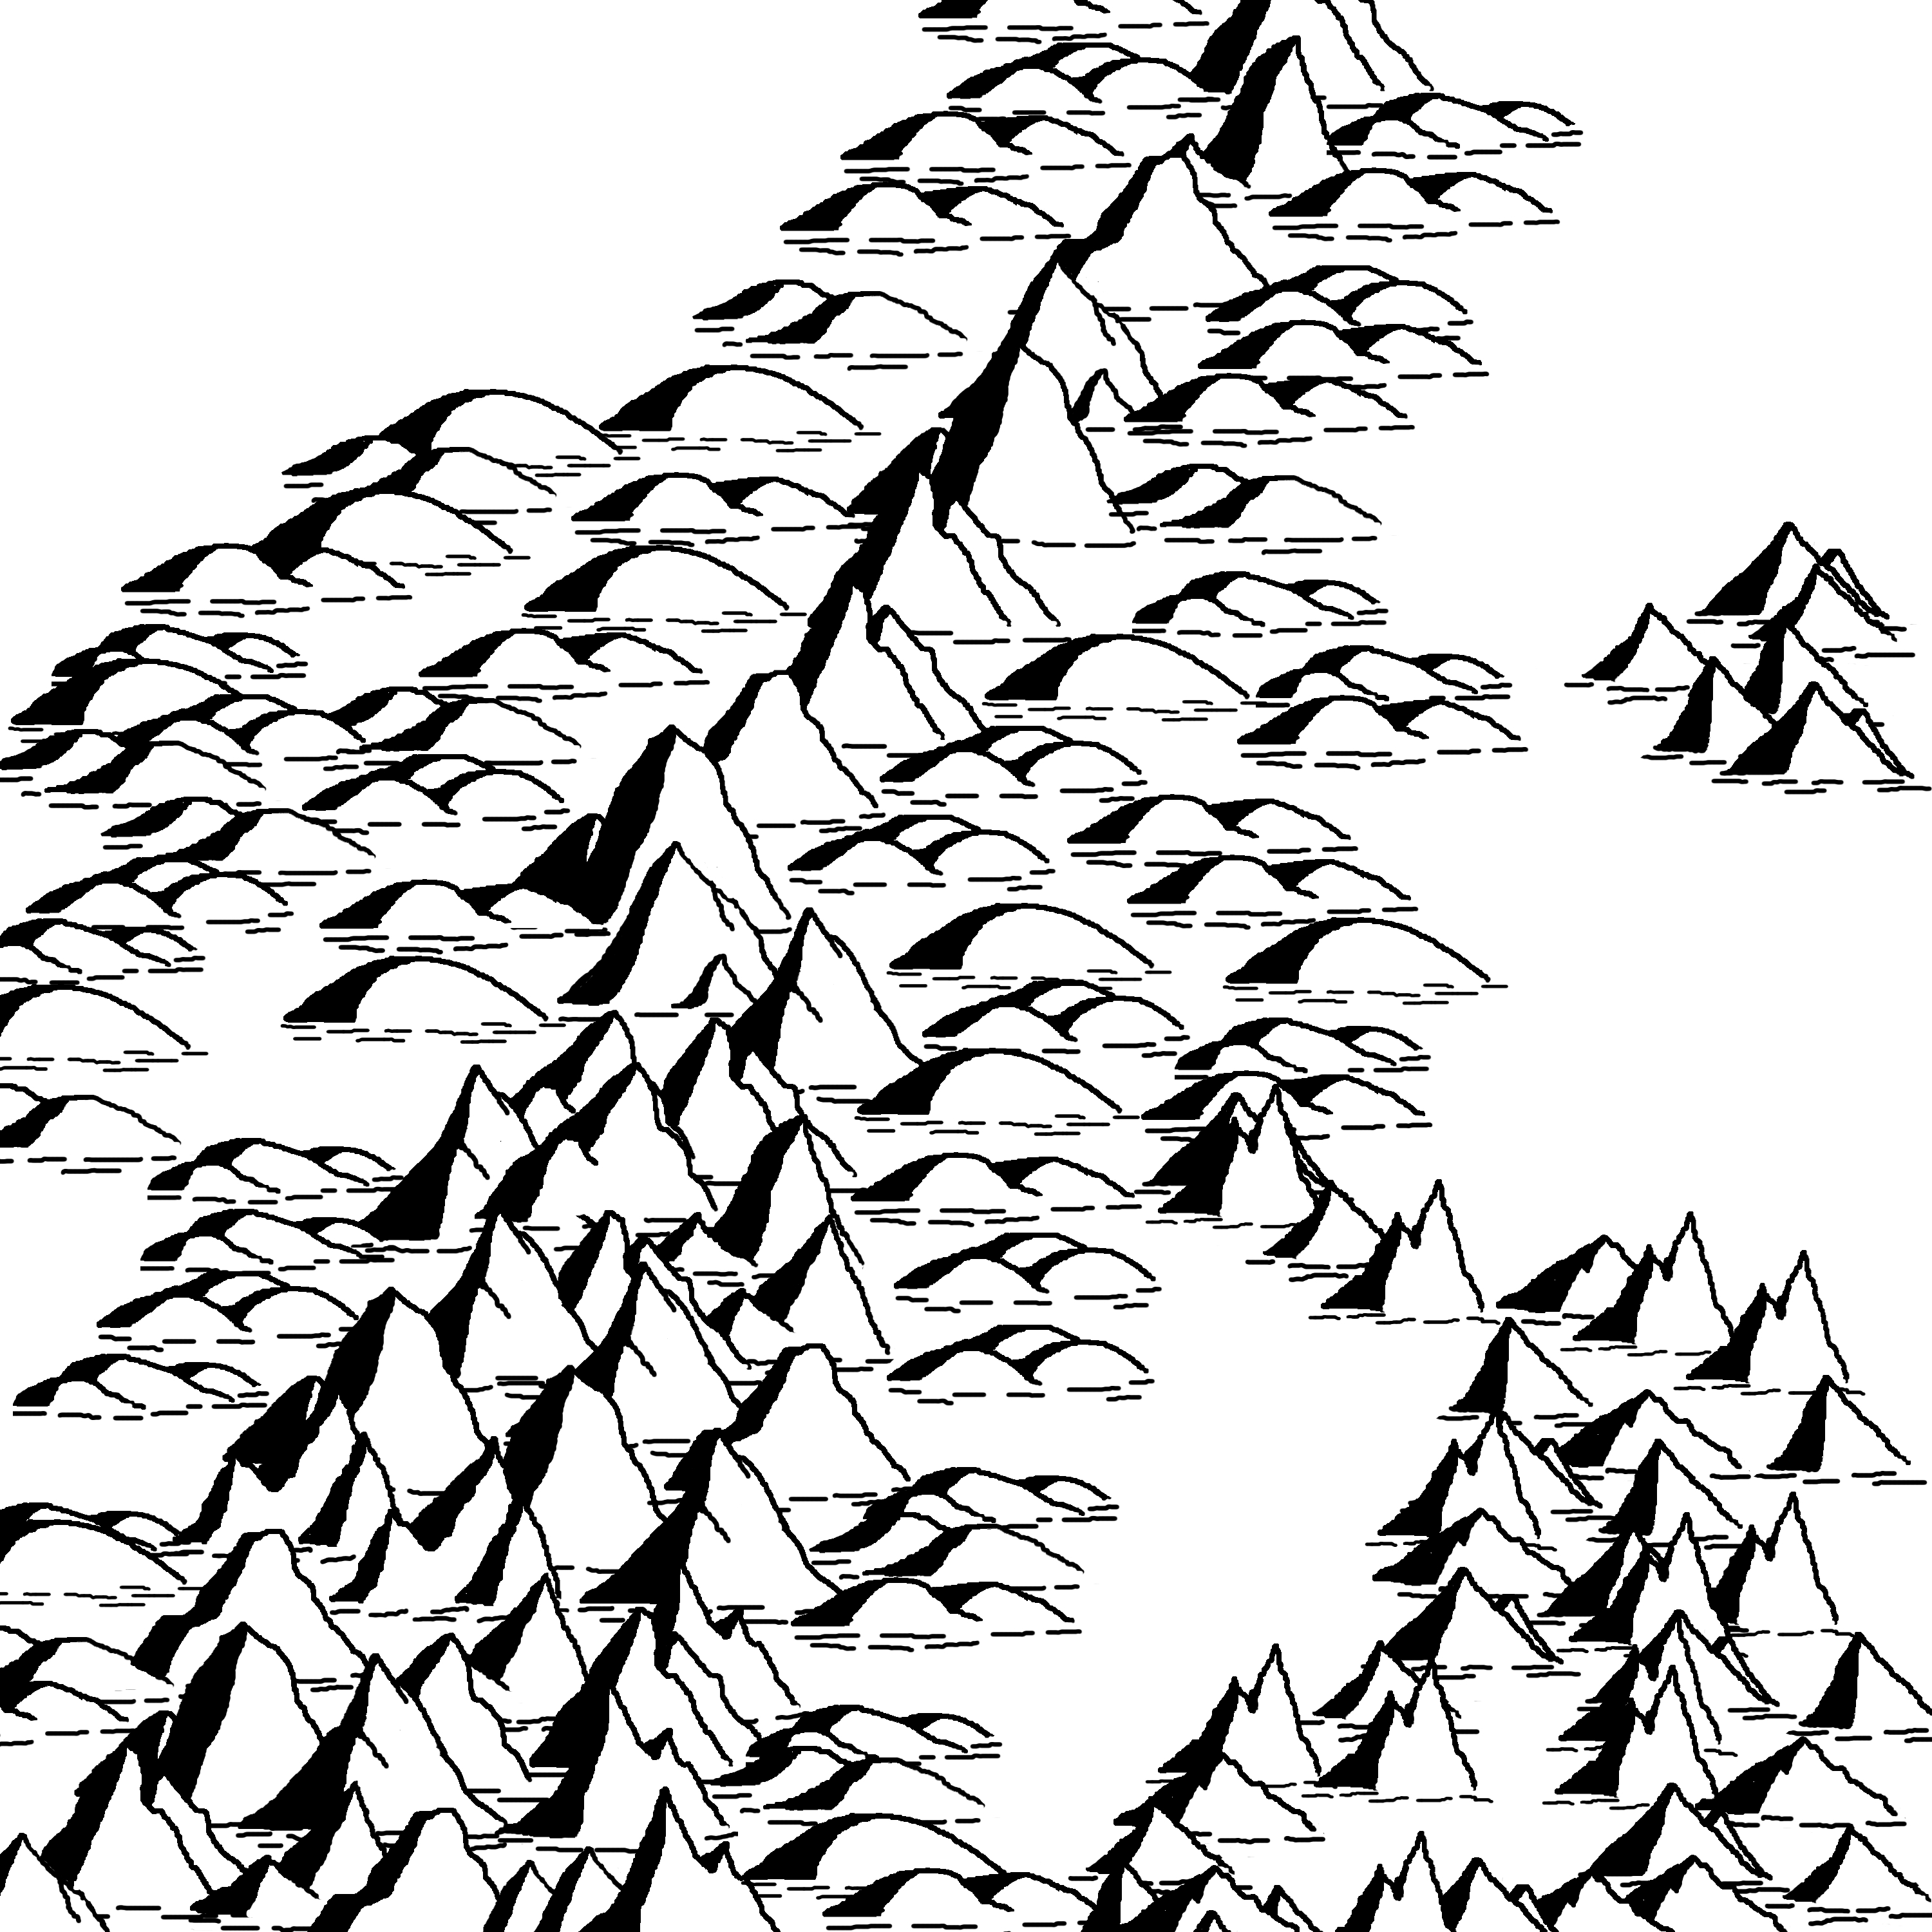 3000x3000 Makin' Mountains And Makin' Trees. Cartographic Principles